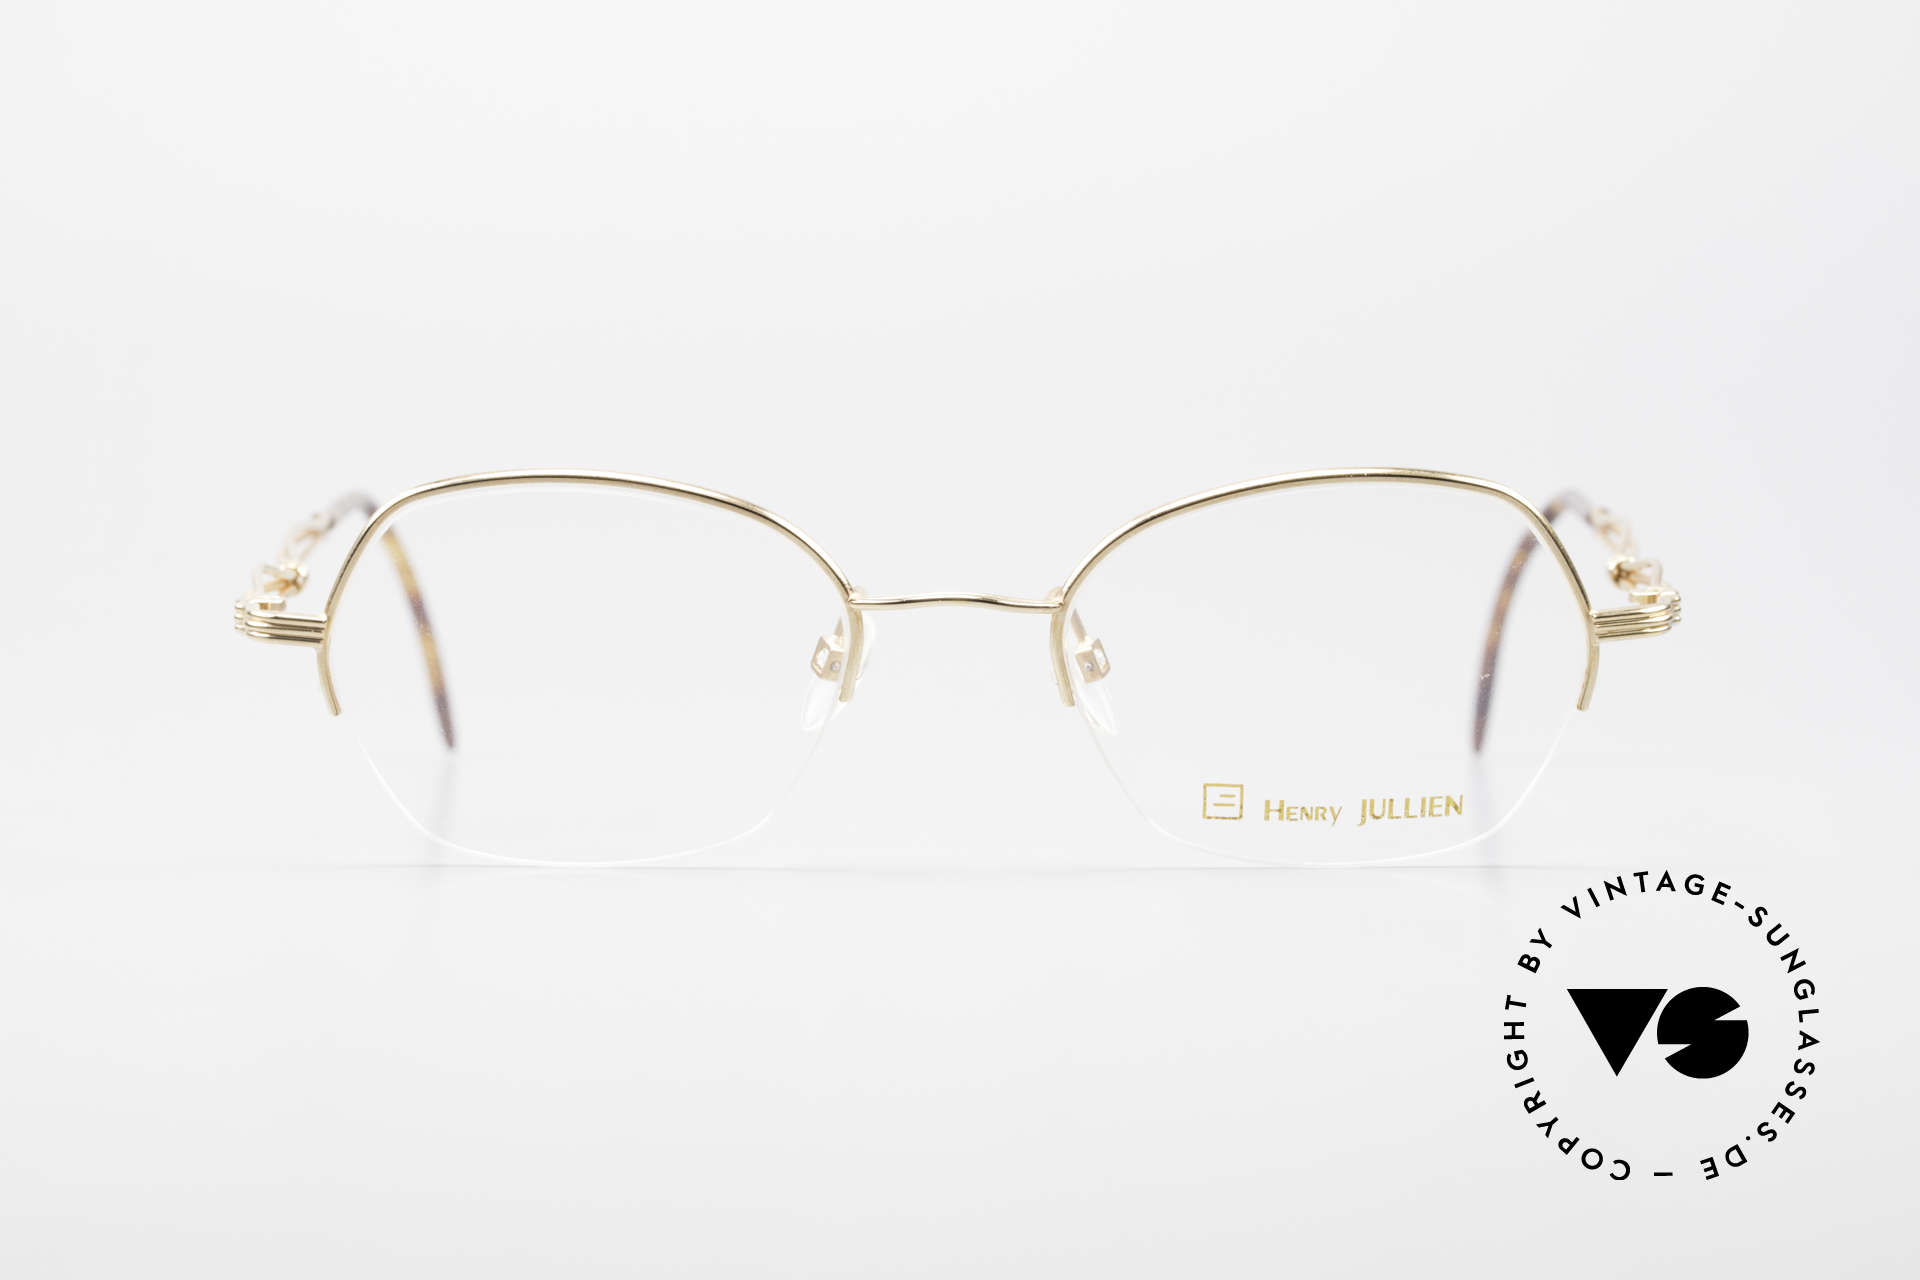 Henry Jullien Ellipse 12 Gold Doublé Ladies Glasses, gold doublé frame in 40/000 proportion; precious rarity, Made for Women